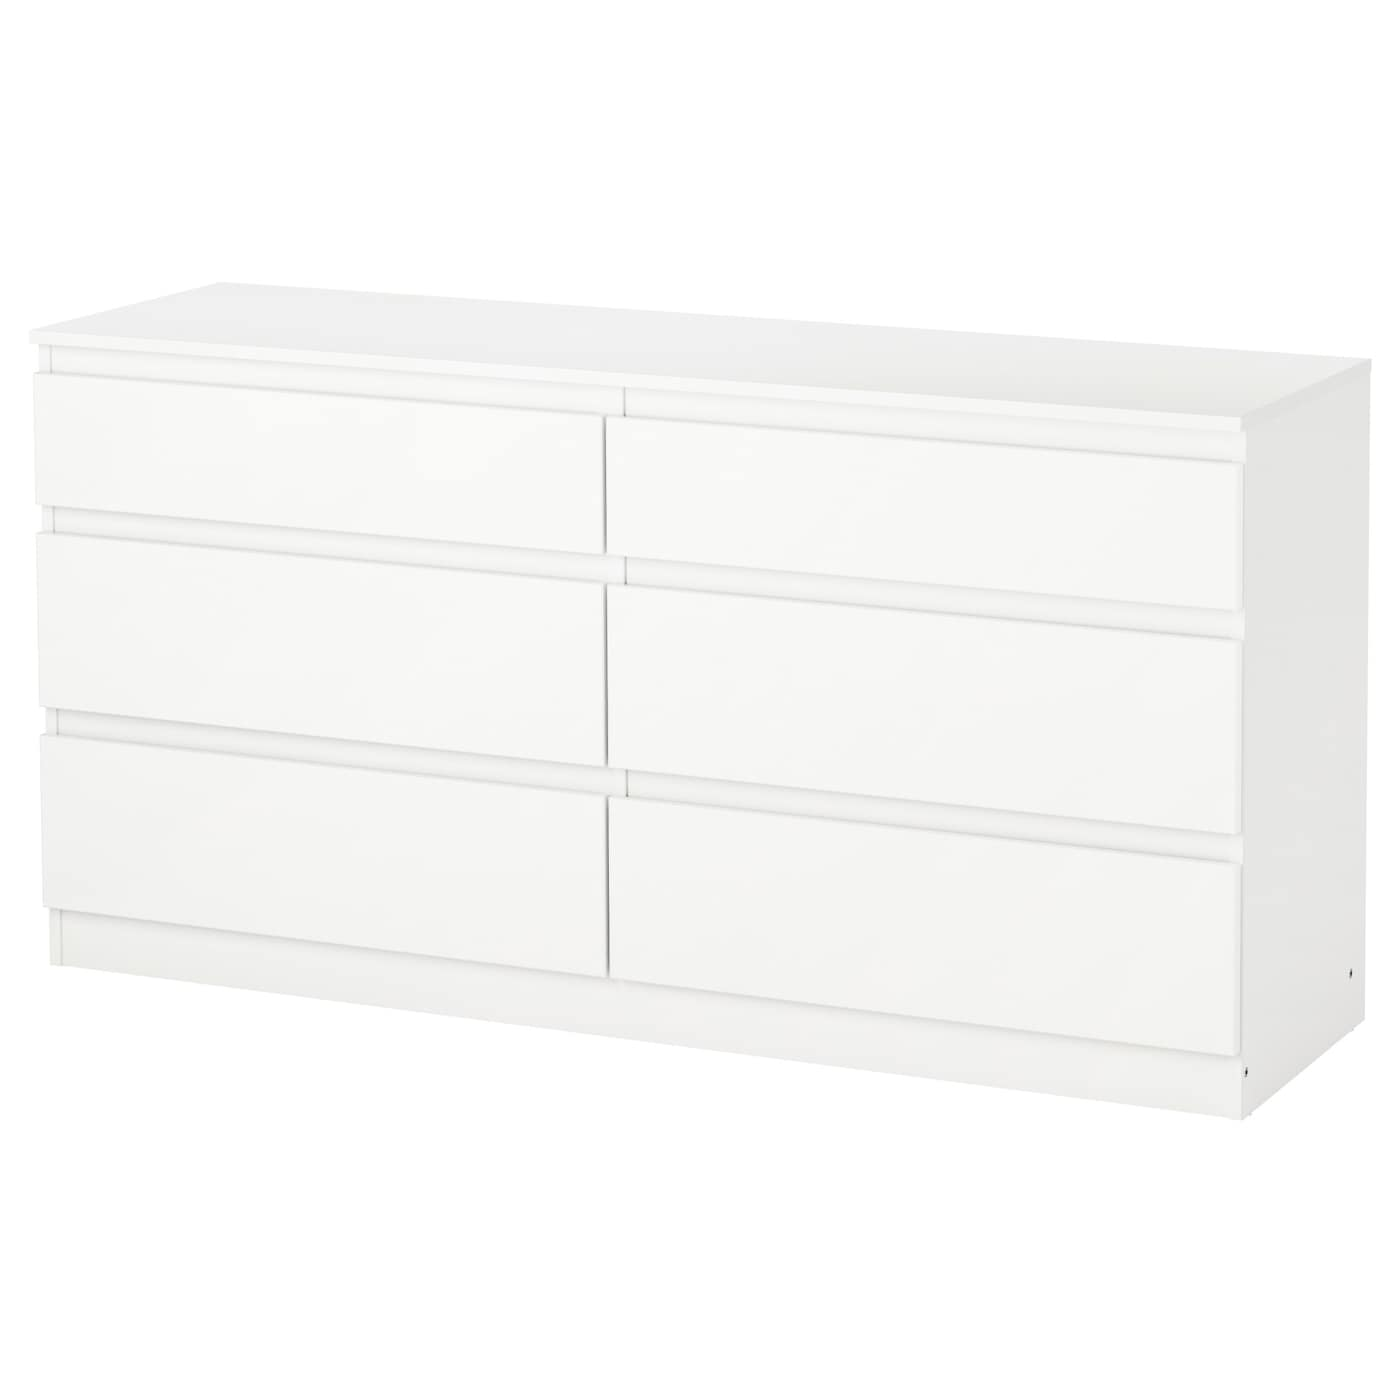 Kullen chest of 6 drawers white 140x72 cm ikea for Sideboard tiefe 30 cm